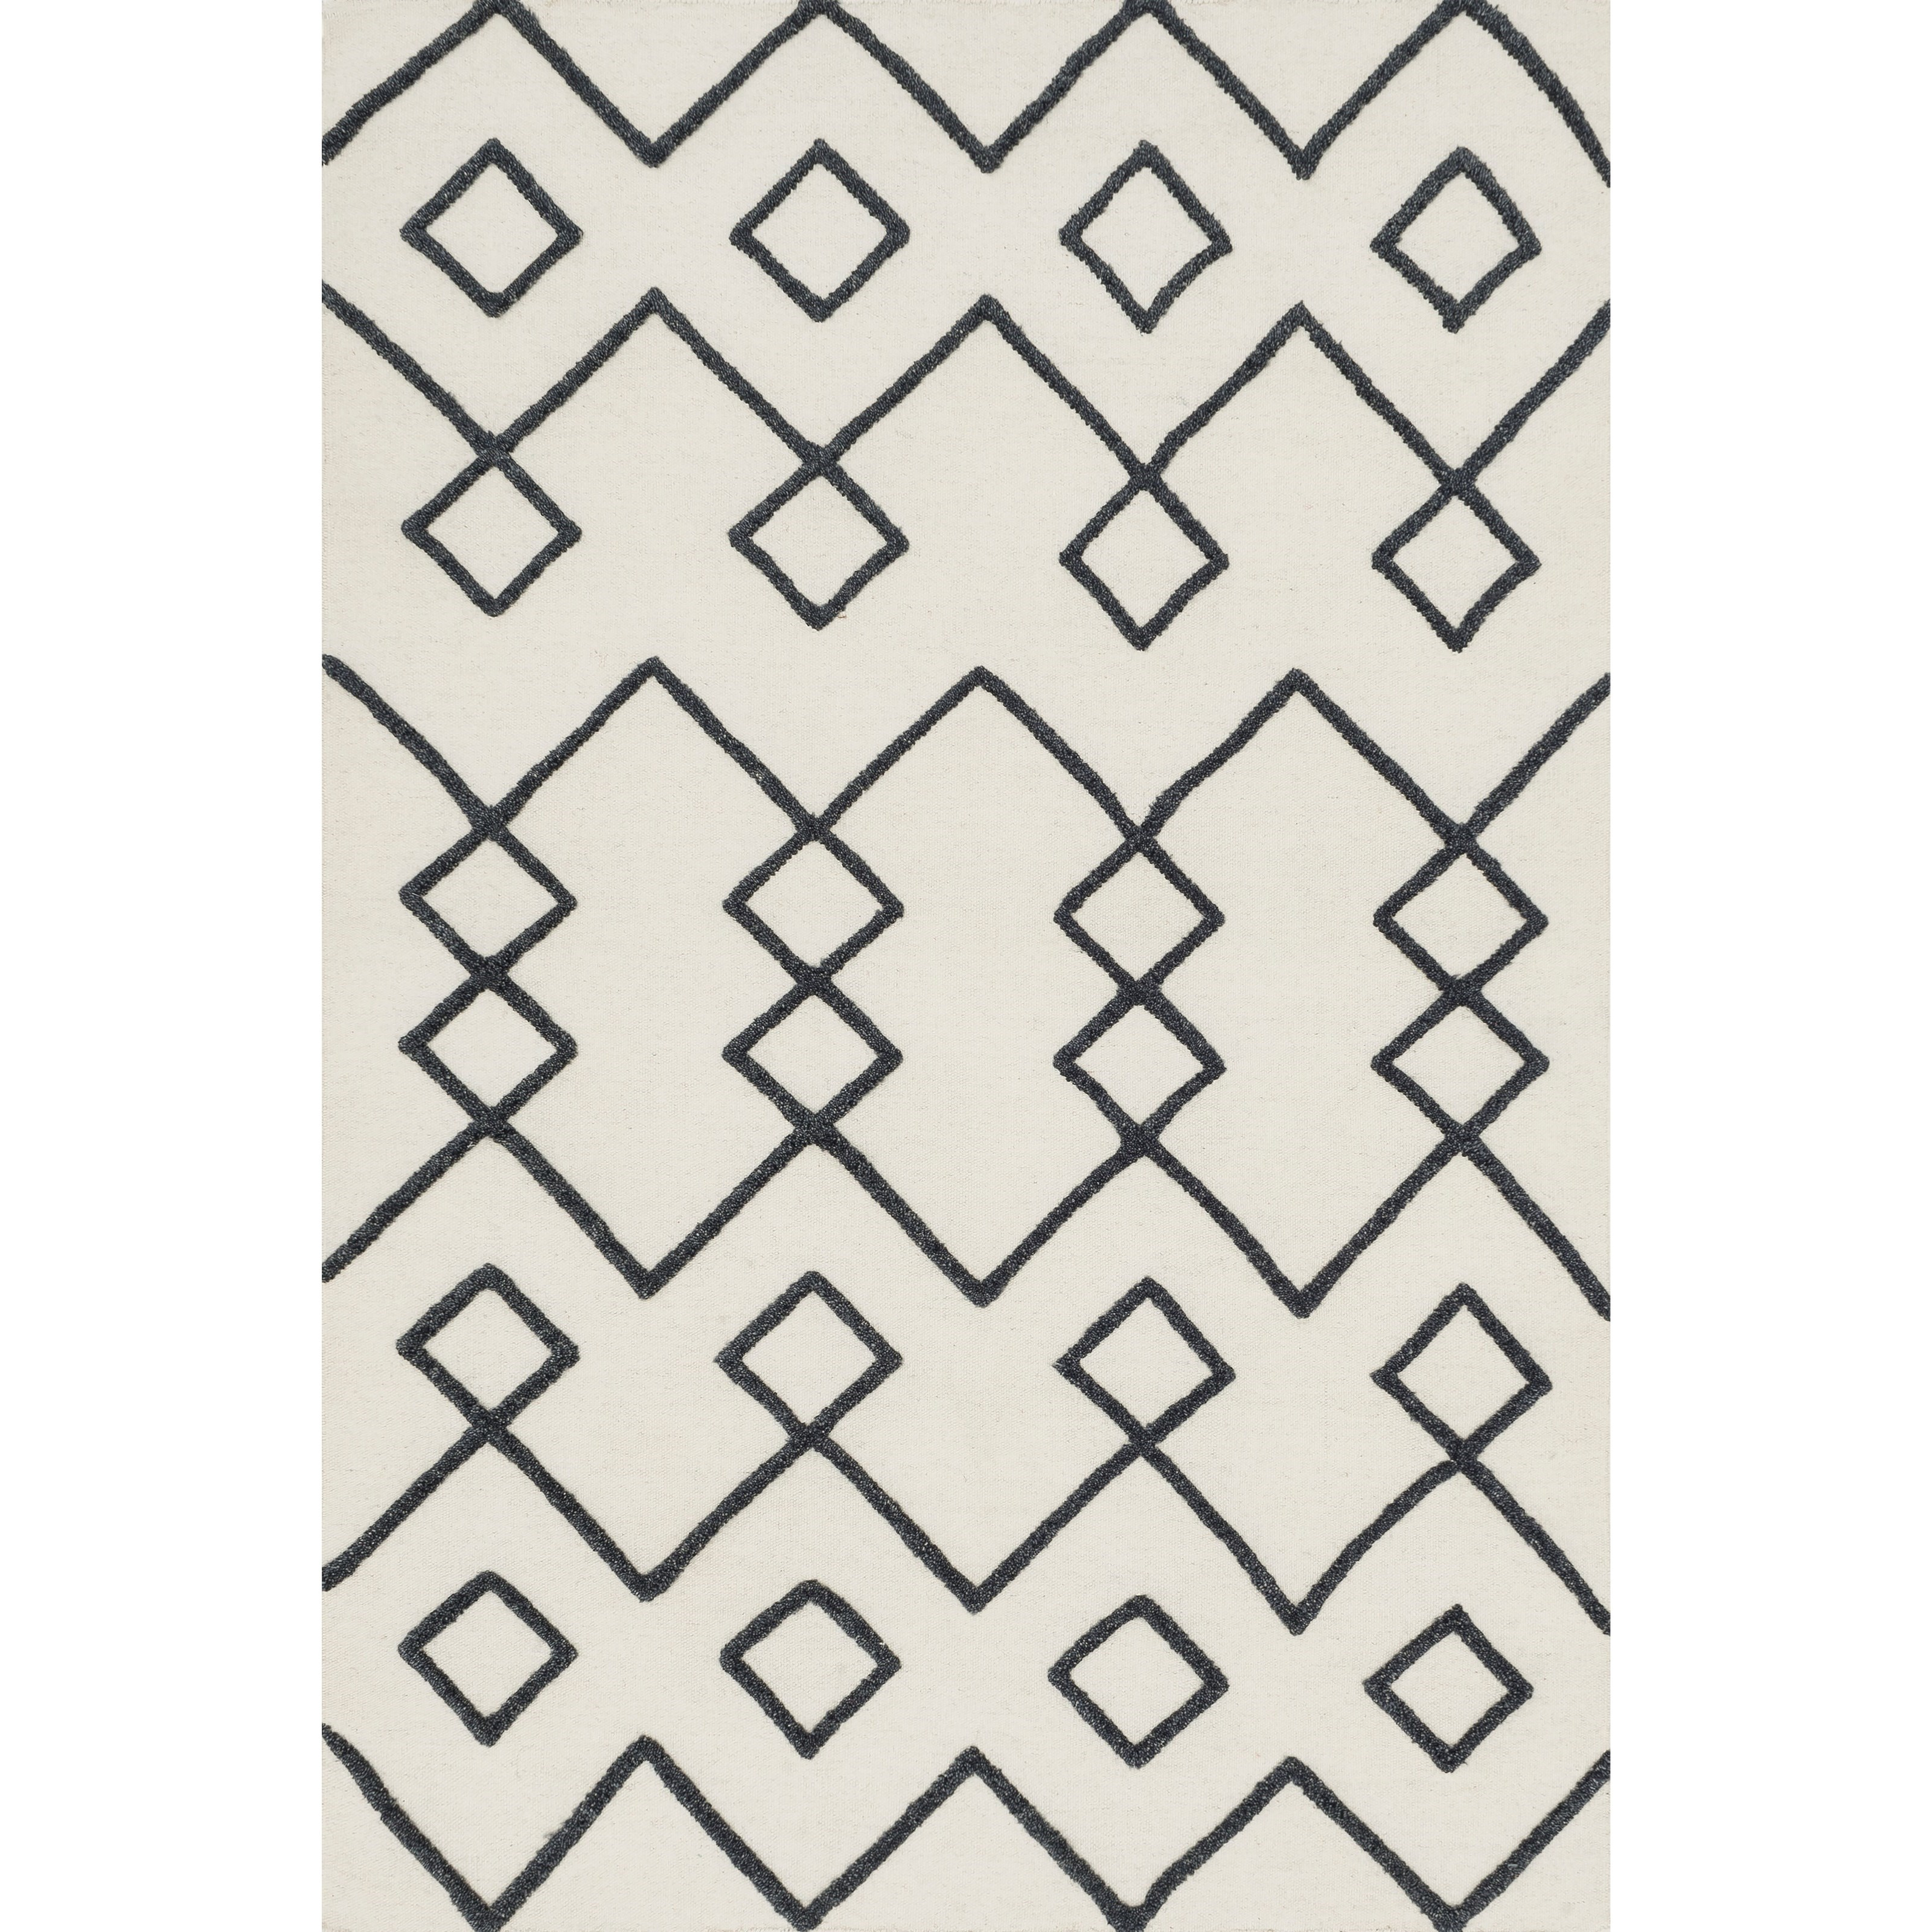 "Adler 1'6"" x 1'6""  Ivory Rug by Loloi Rugs at Sprintz Furniture"